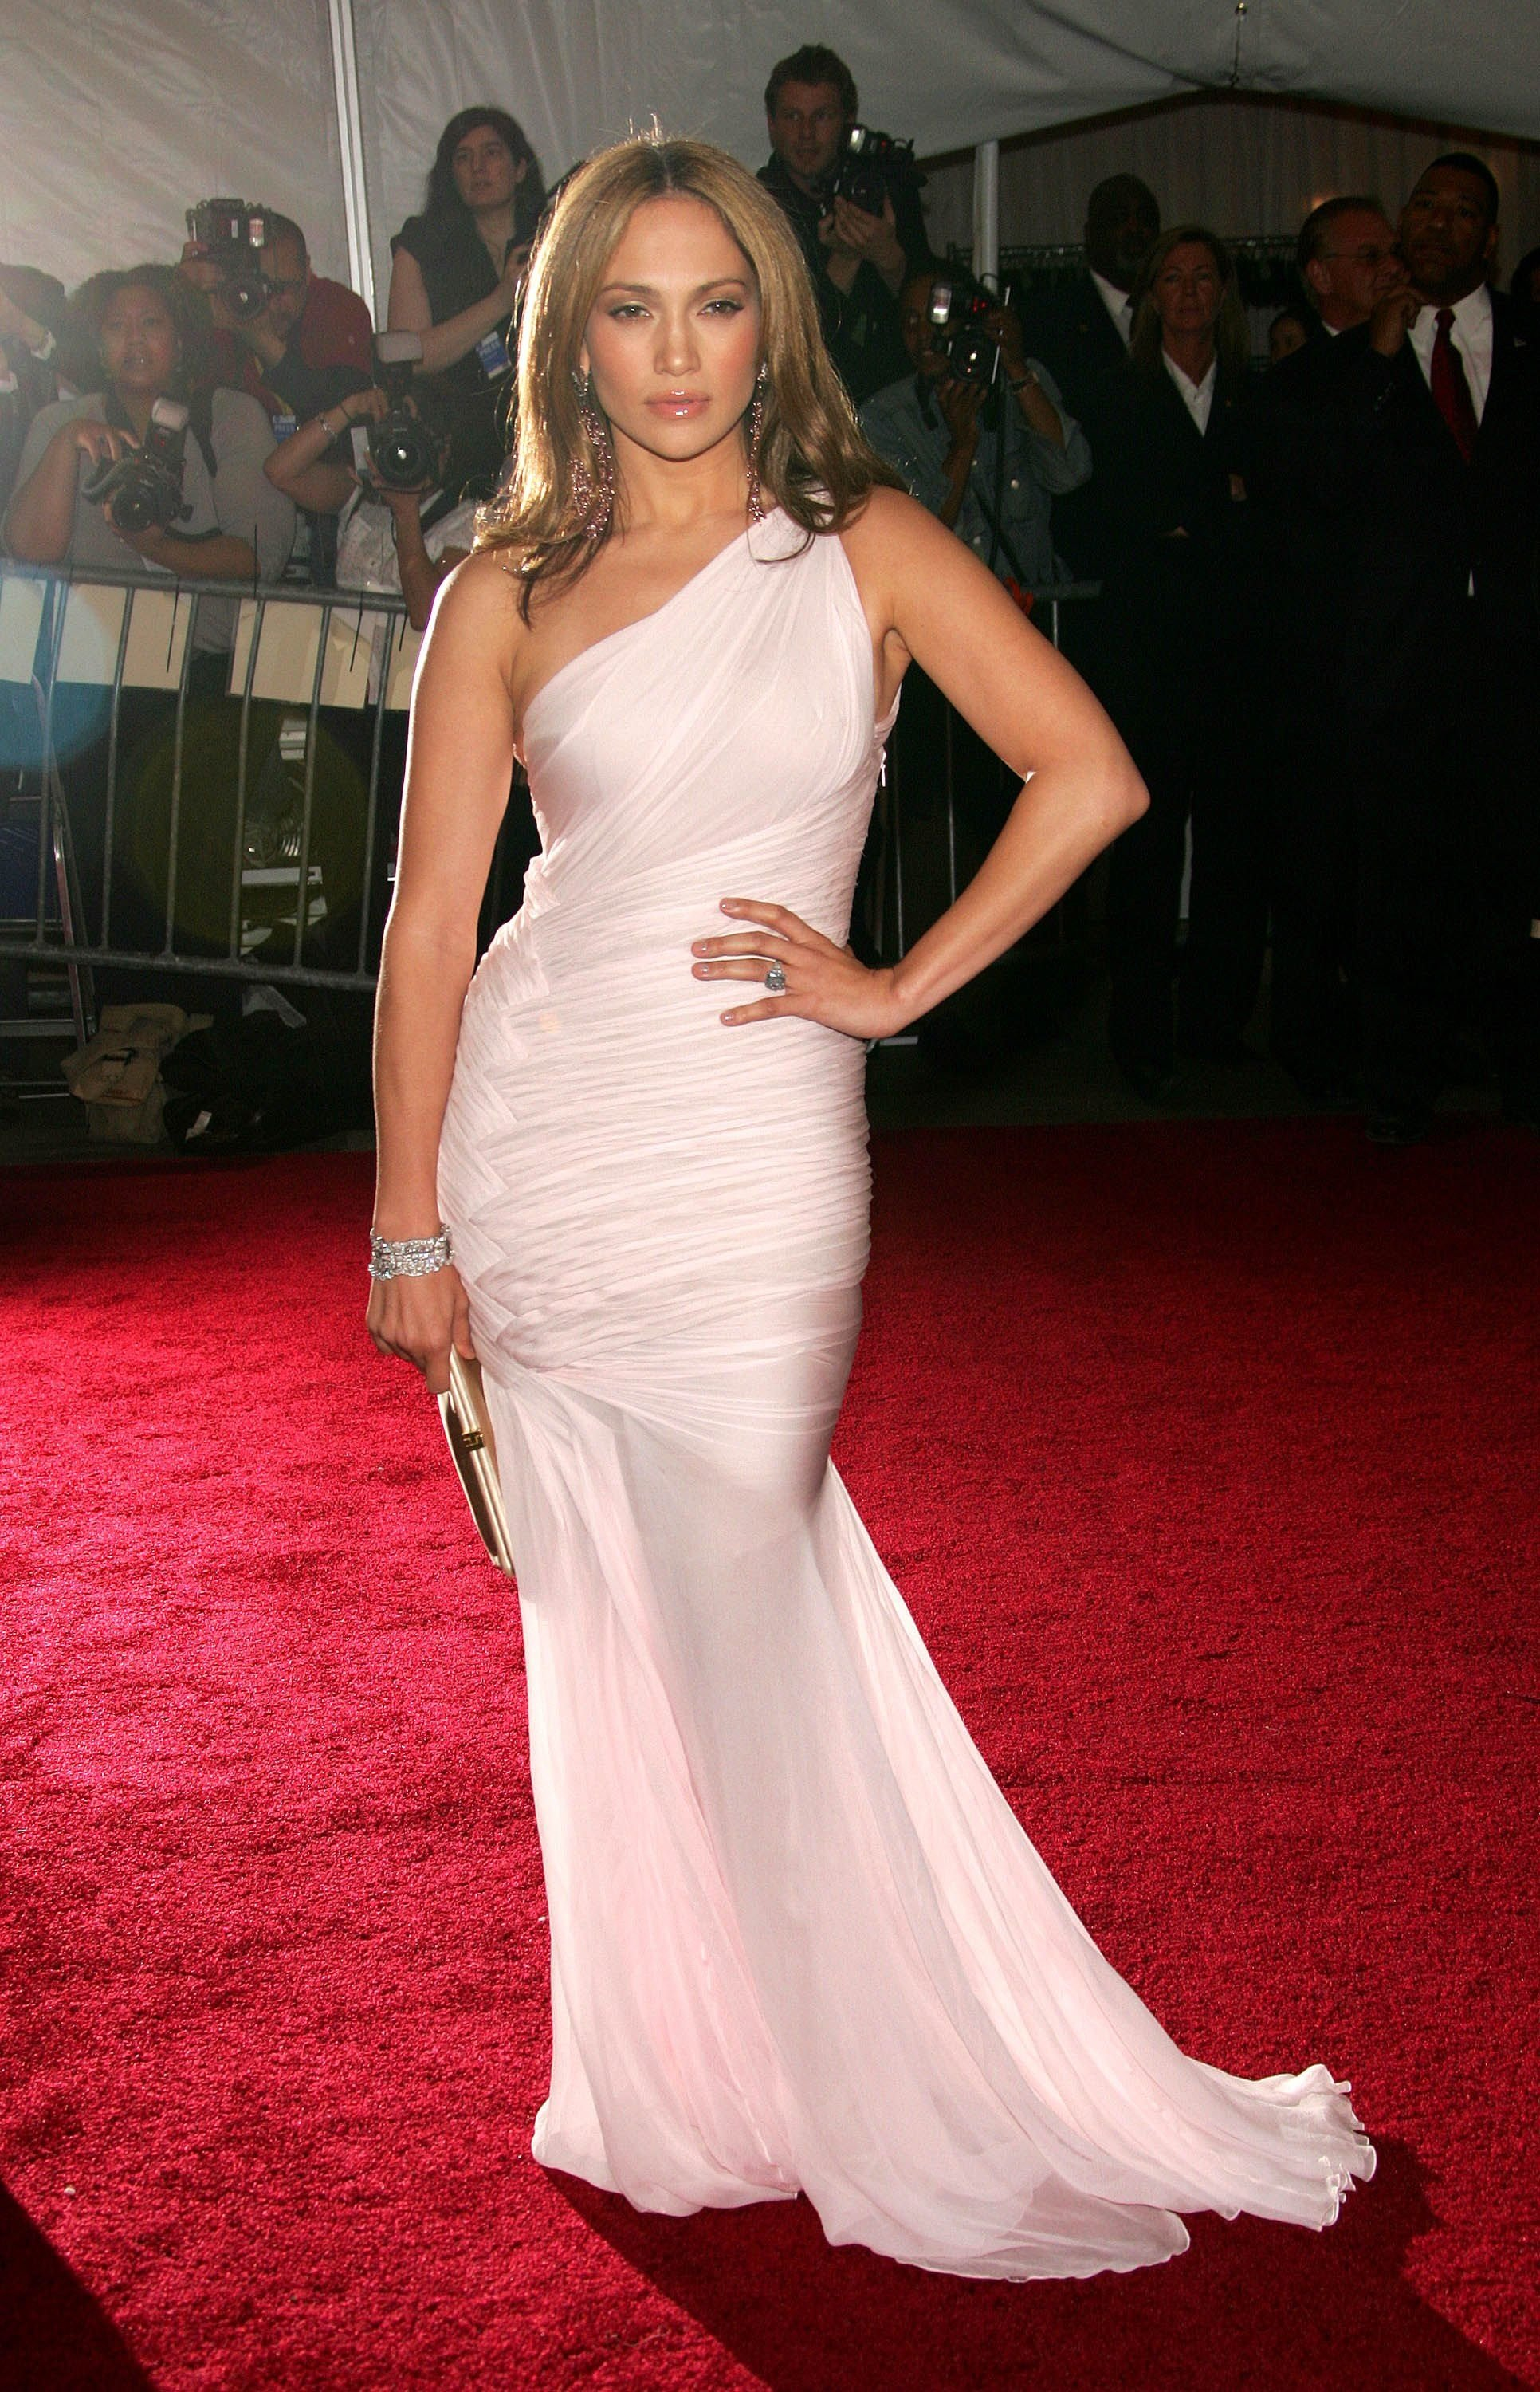 Jennifer Lopez at the Metropolitan Museum of Art Costume Institute Benefit Gala: Anglomania on May 1, 2006, in New York City | Photo: Evan Agostini/Getty Images